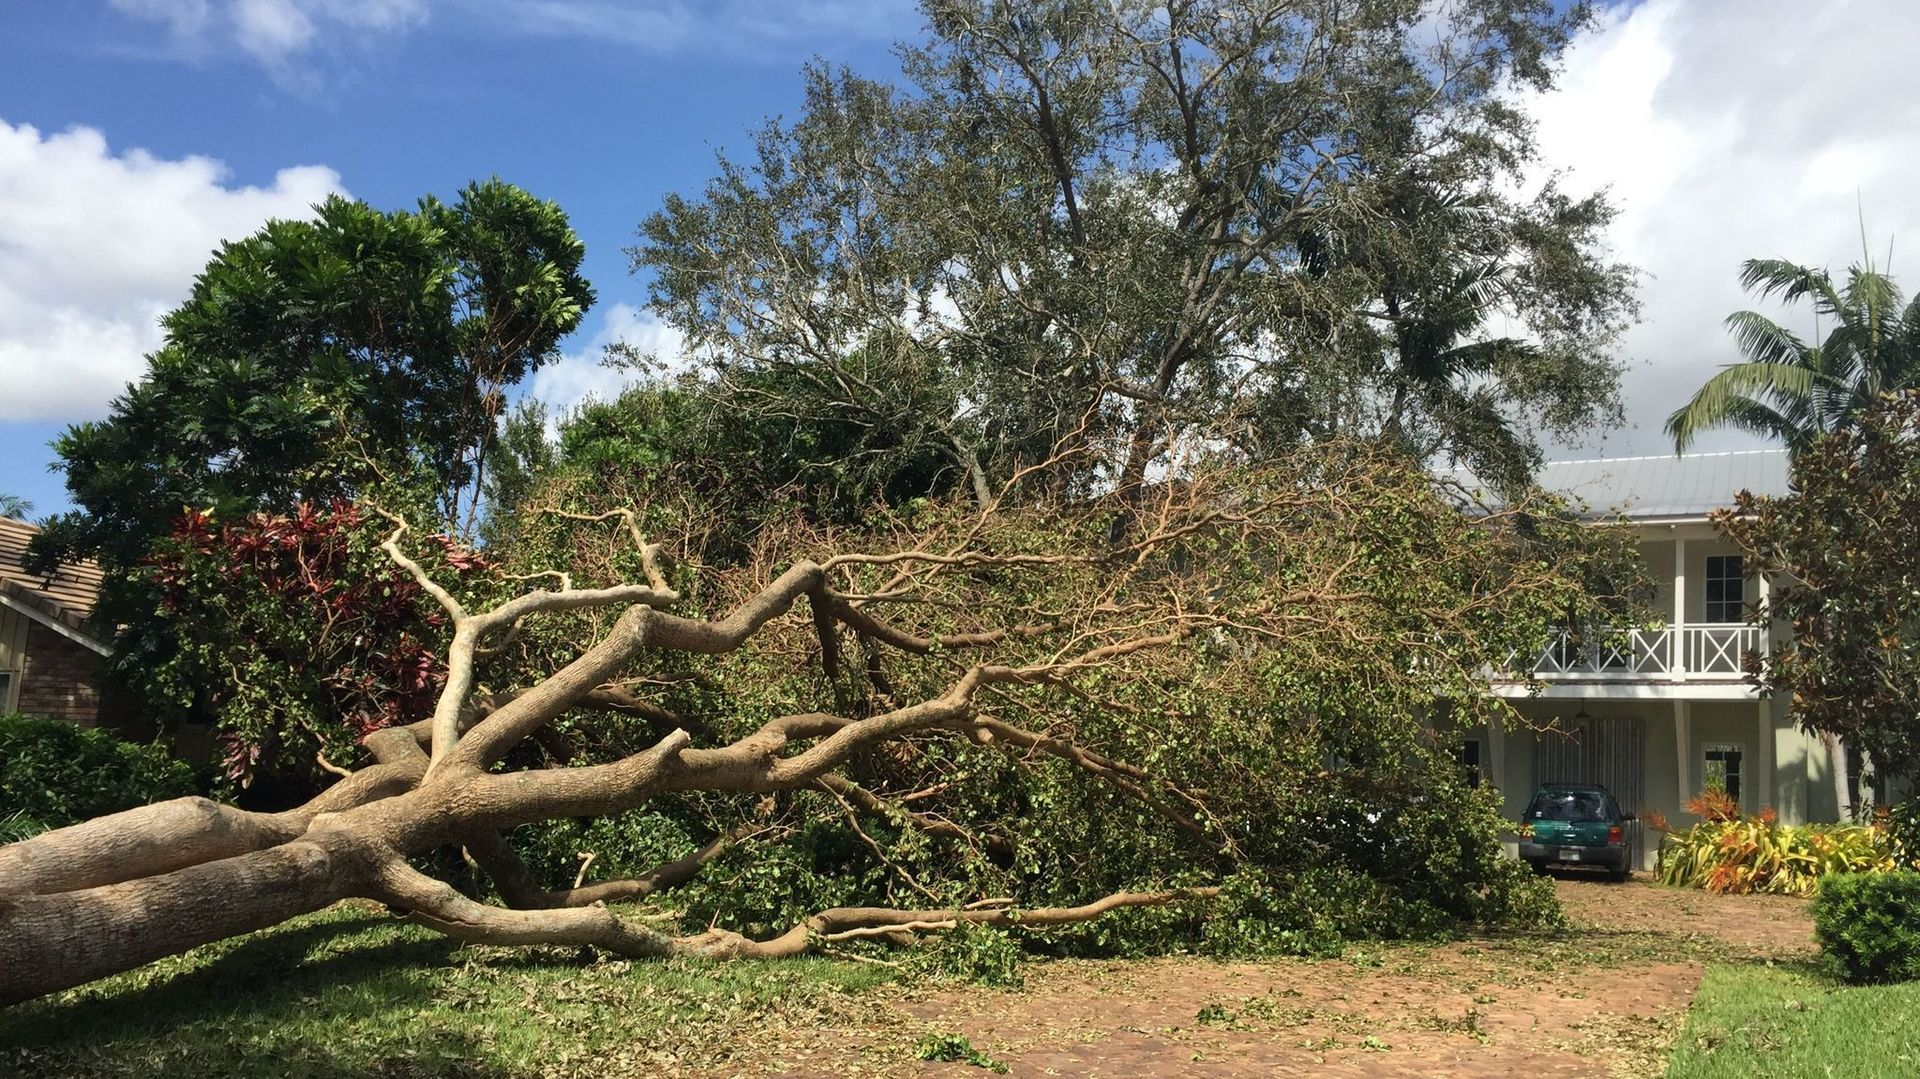 Hire the Right Tree Removal Company For the Job